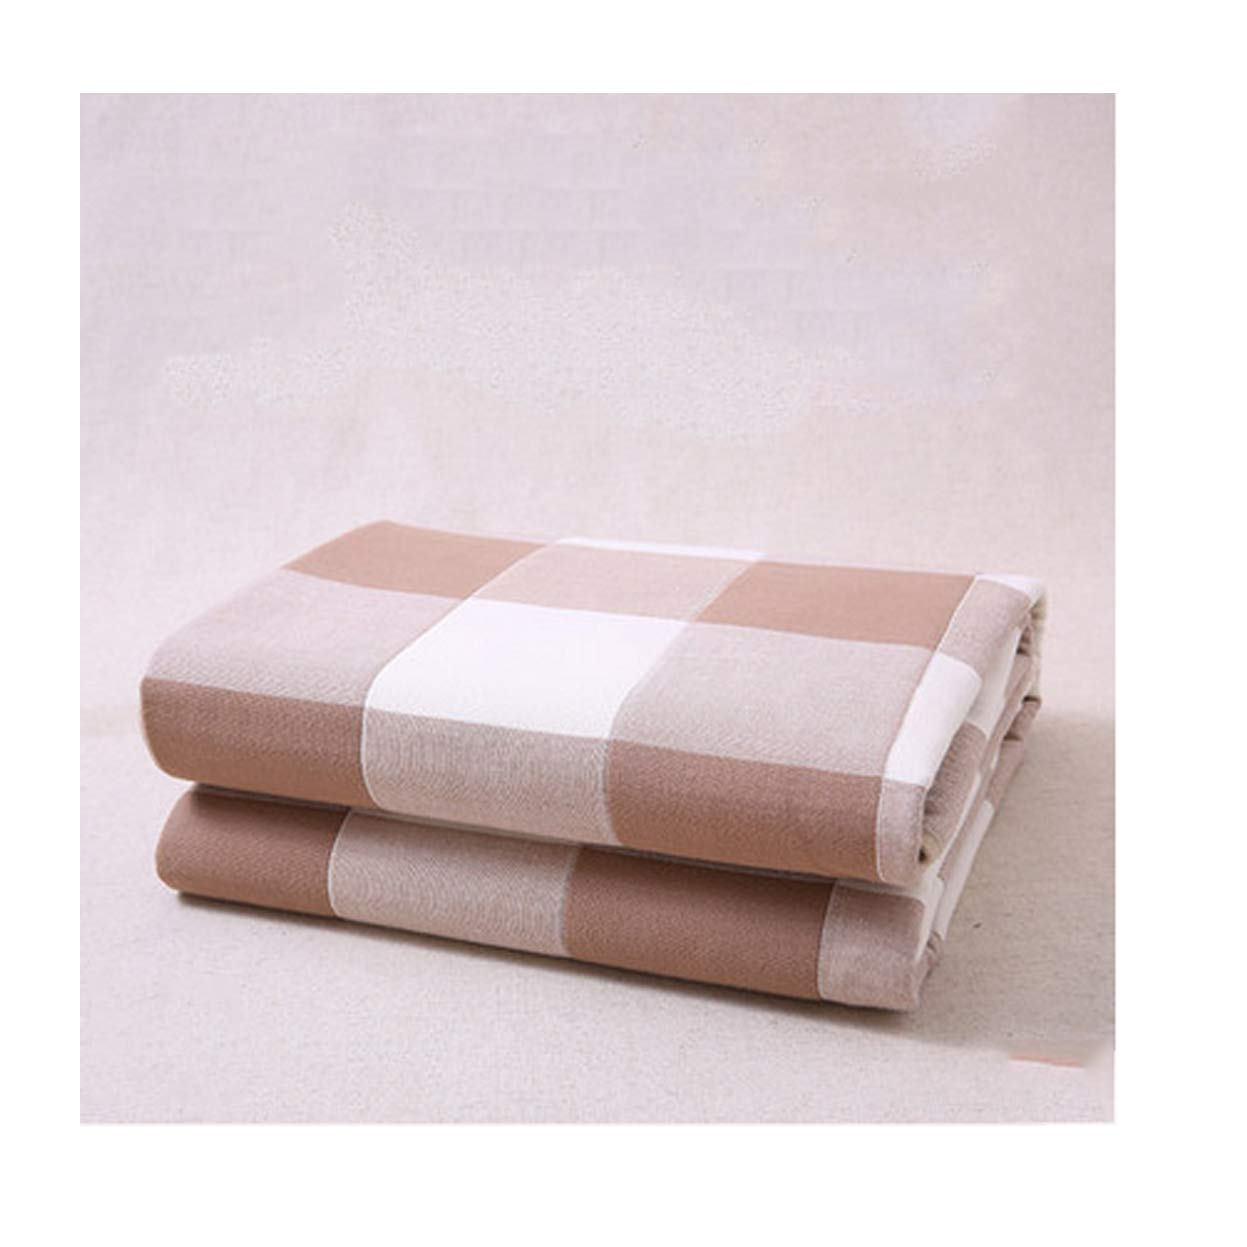 Ggsrtesxs Adult Baby Women's Absorbent Premium Quality Bed Pad Stylish Plaid Padded Cotton Breathable Non-Slip Pads Quilted Waterproof Reusable Washable,Brown,90x116cm